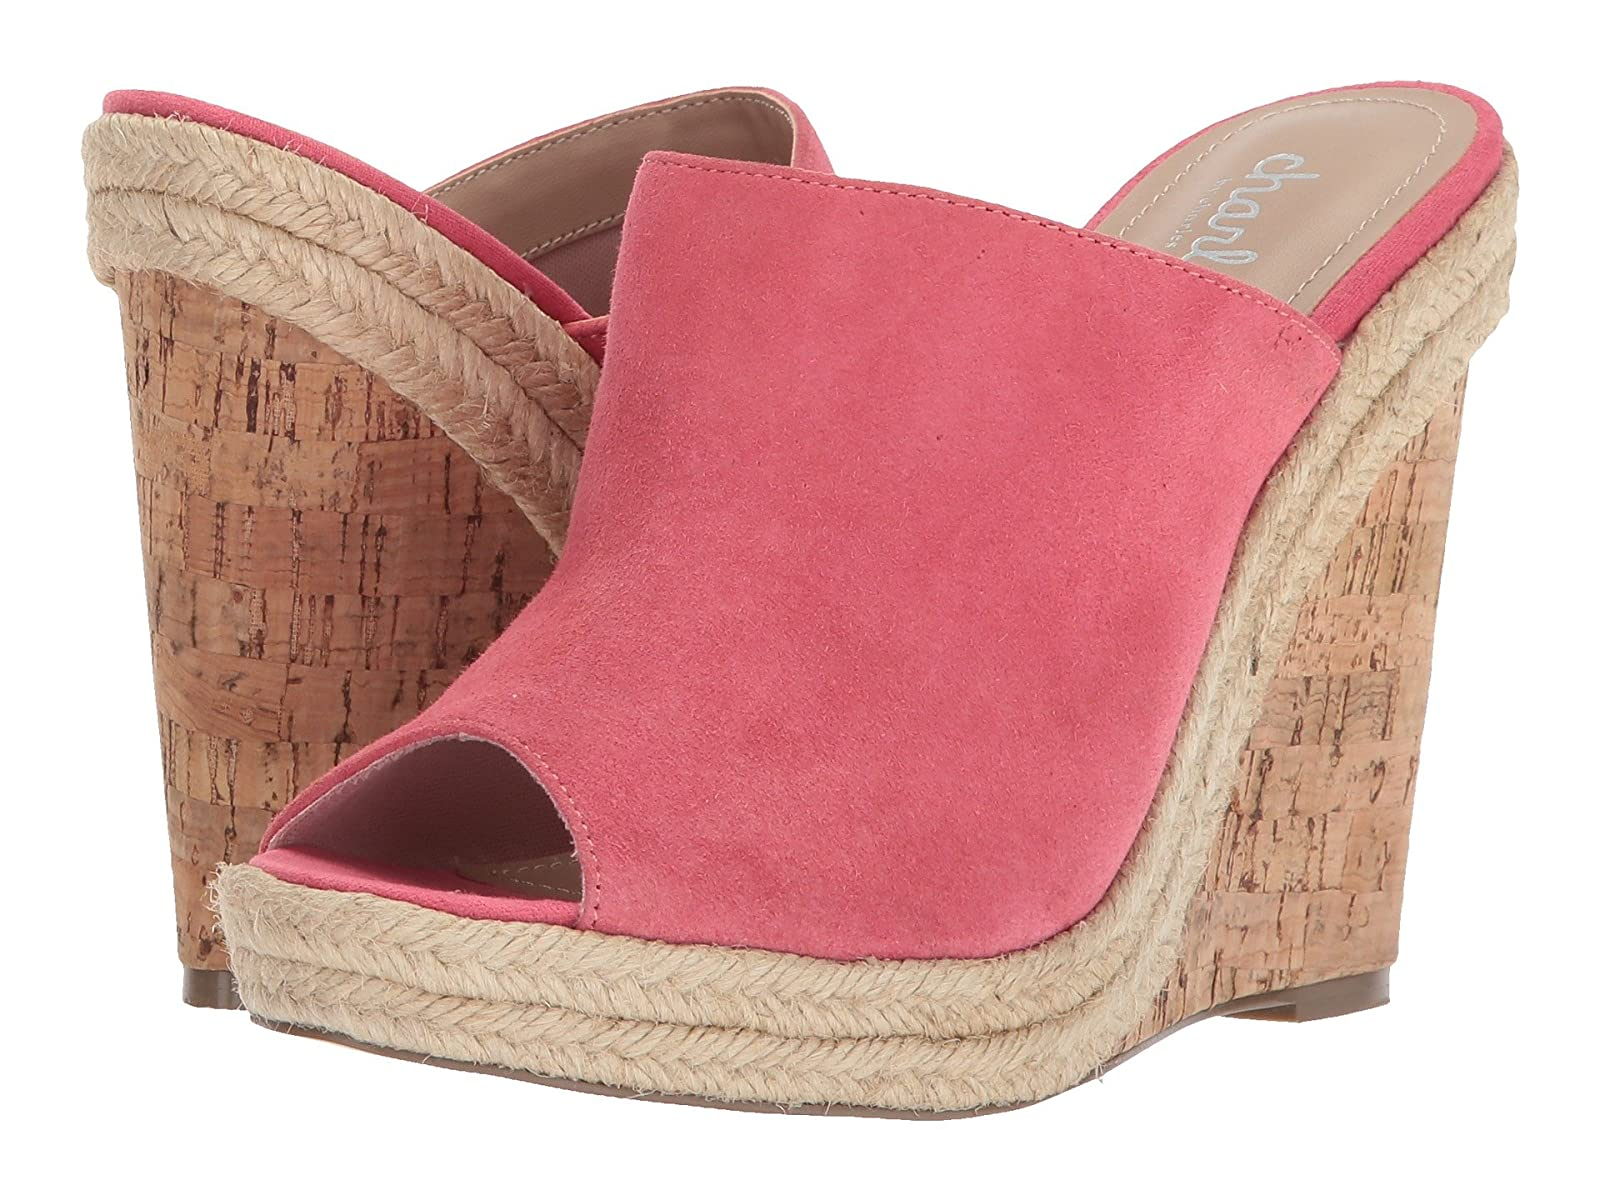 Charles by Charles David BalenAtmospheric grades have affordable shoes